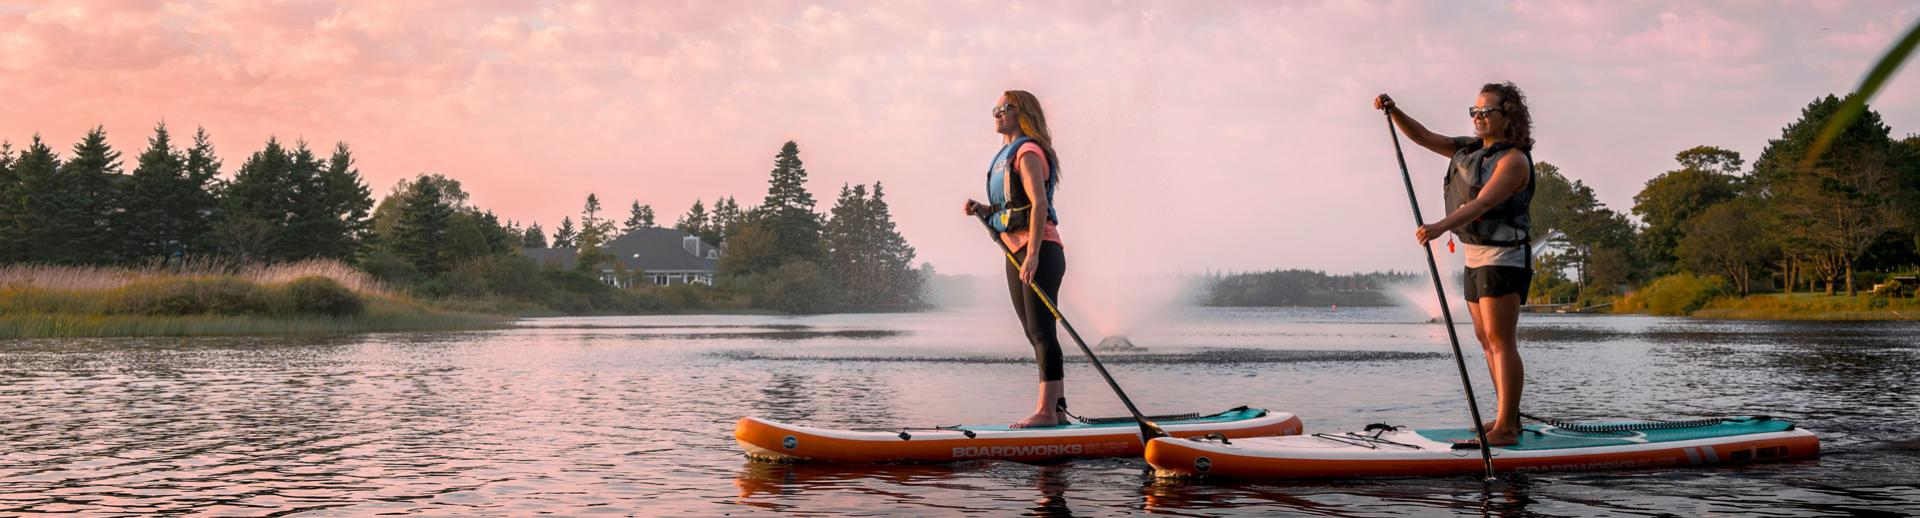 Paddling at sunset on Lake Milo in Yarmouth, Nova Scotia